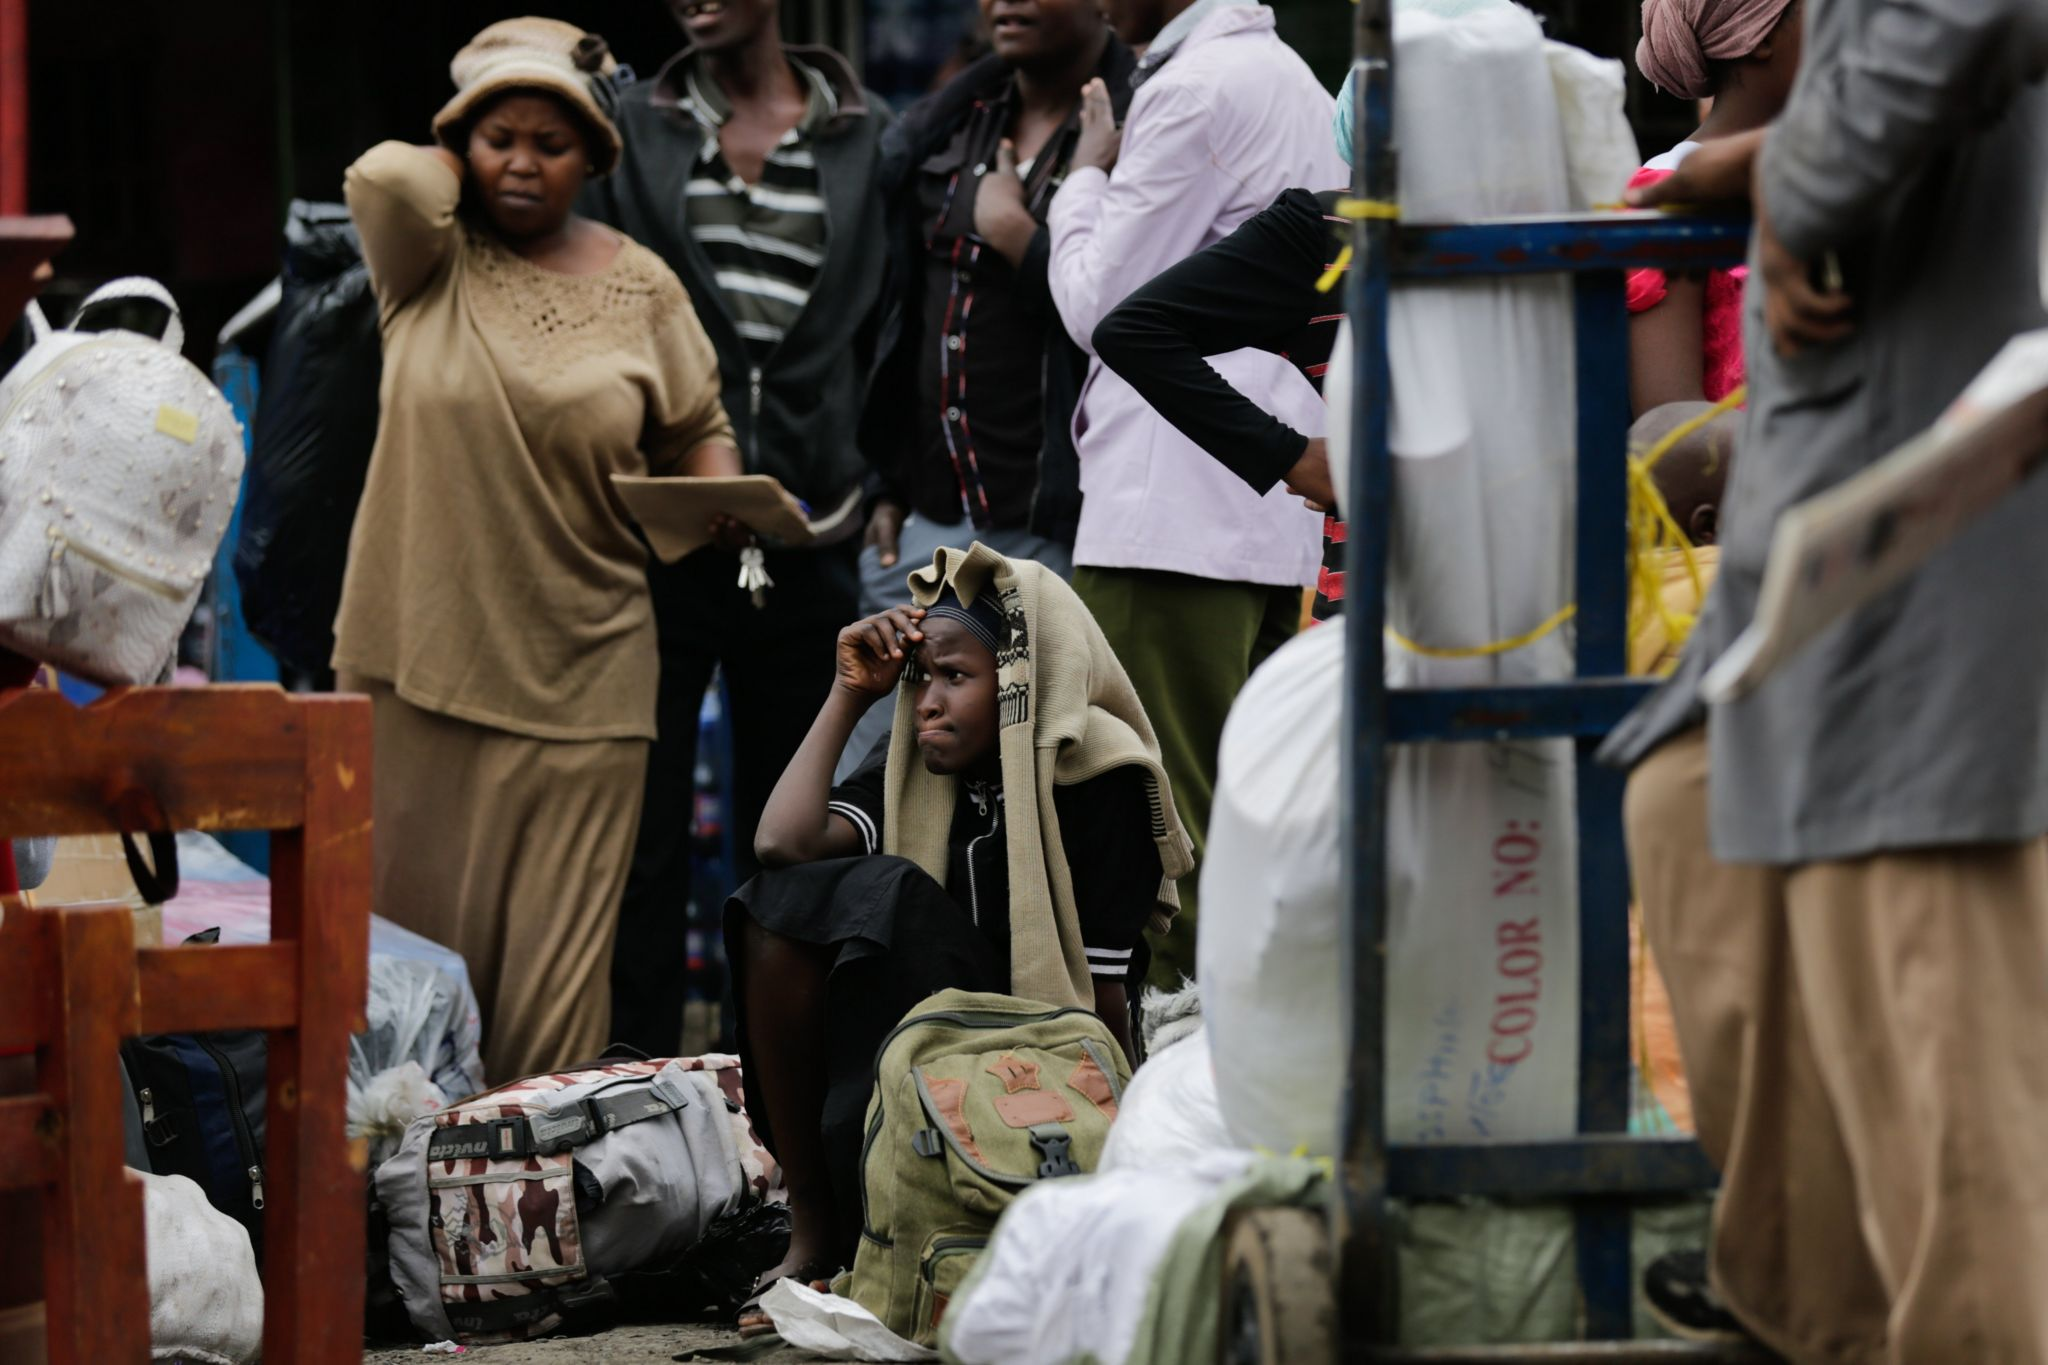 Kenyans wait in central Nairobi for buses to arrive to take them to rural homes ahead of next week's general election